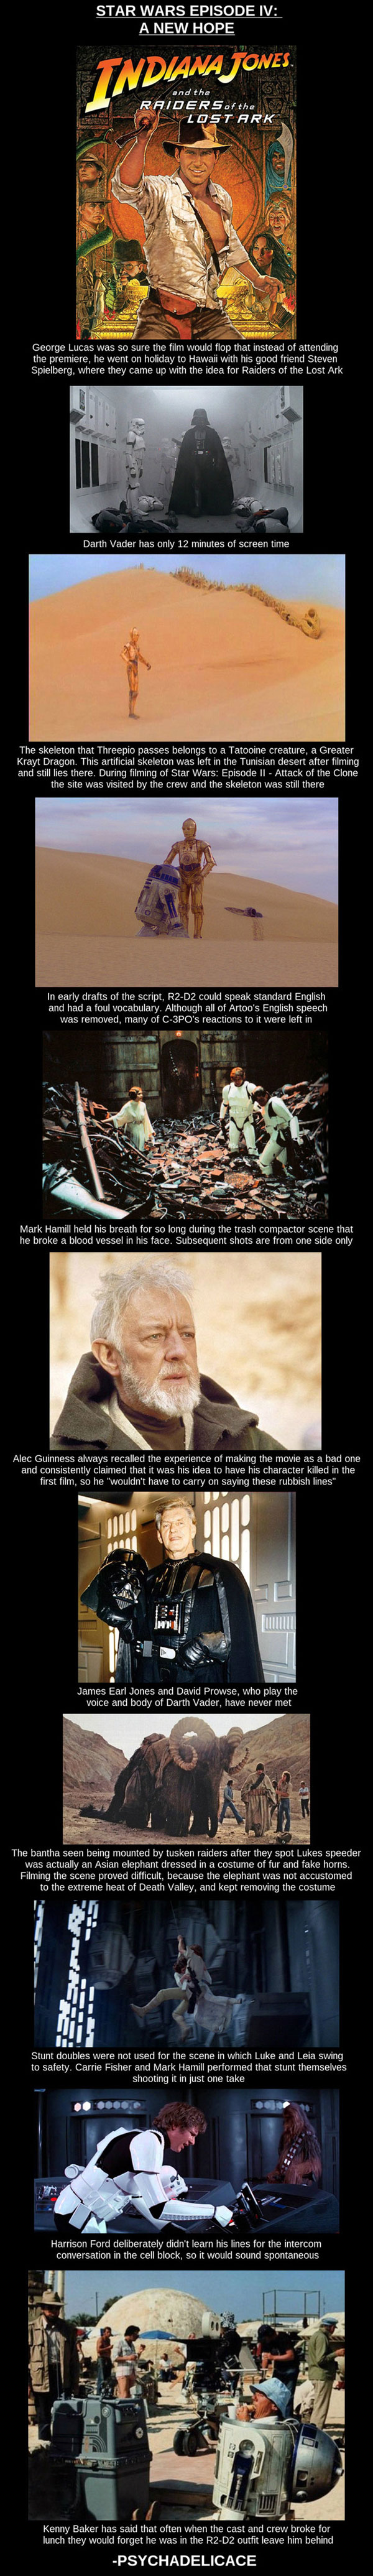 Interesting Star Wars Episode IV: A New Hope Facts